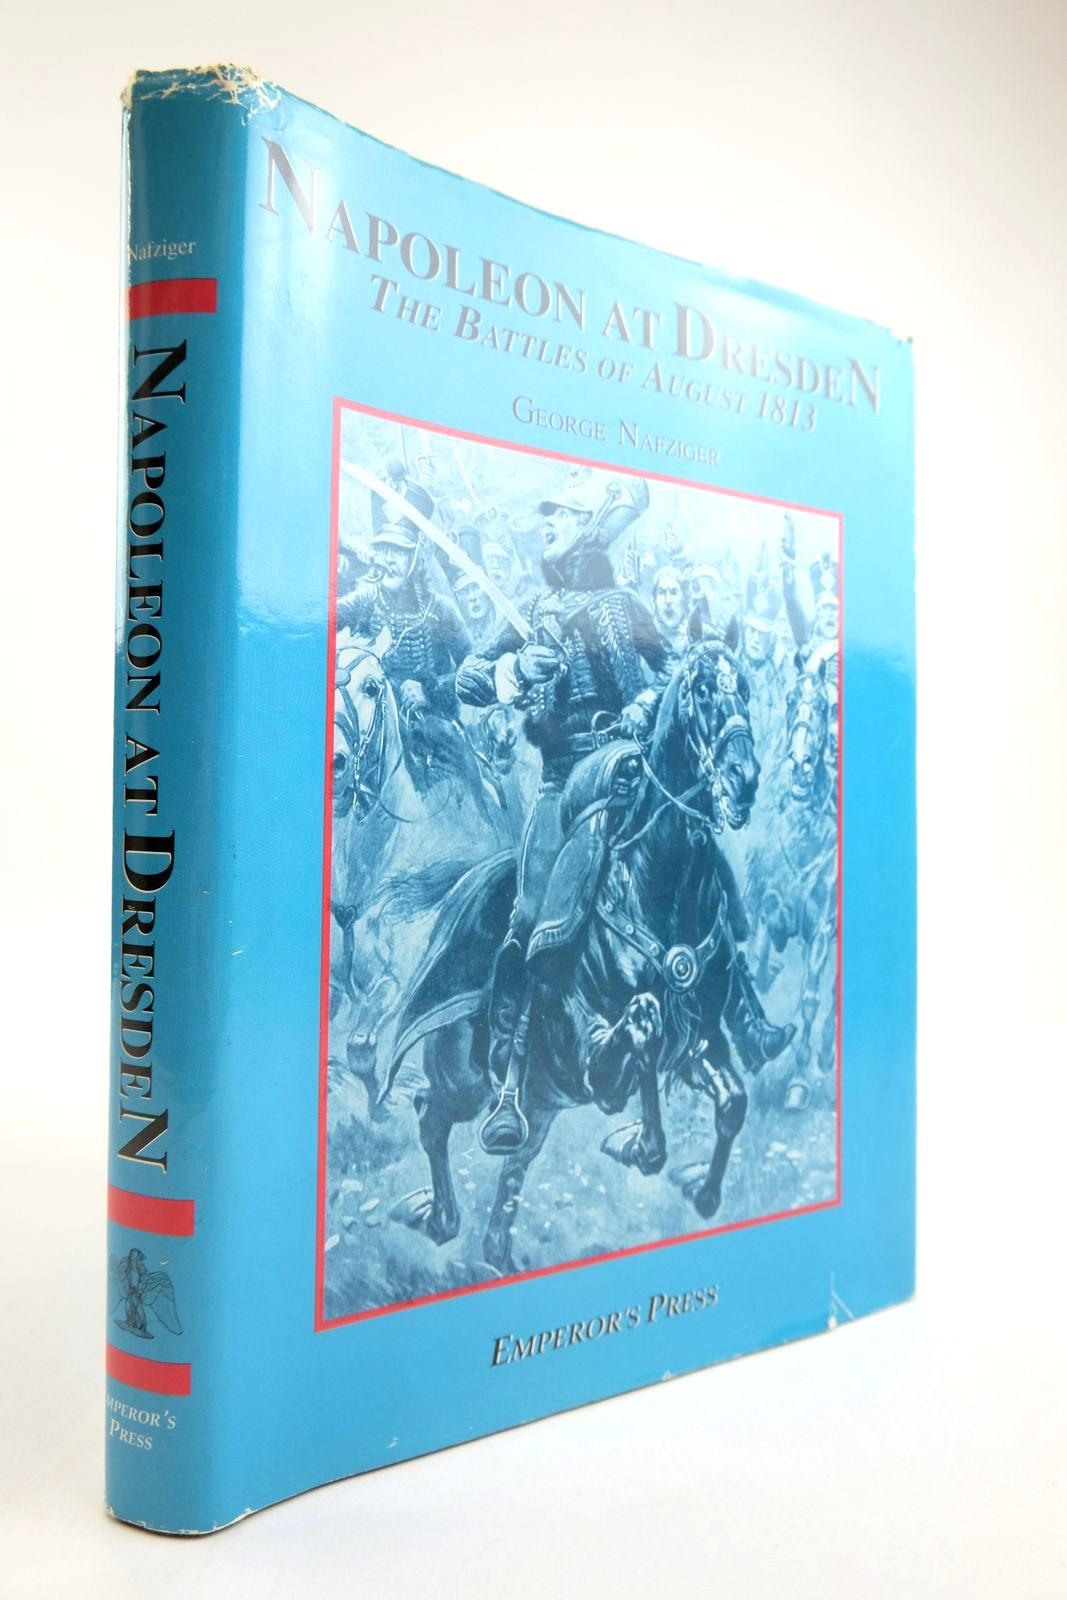 Photo of NAPOLEON'S DRESEDEN CAMPAIGN: THE BATTLES OF AUGUST 1813- Stock Number: 2134159